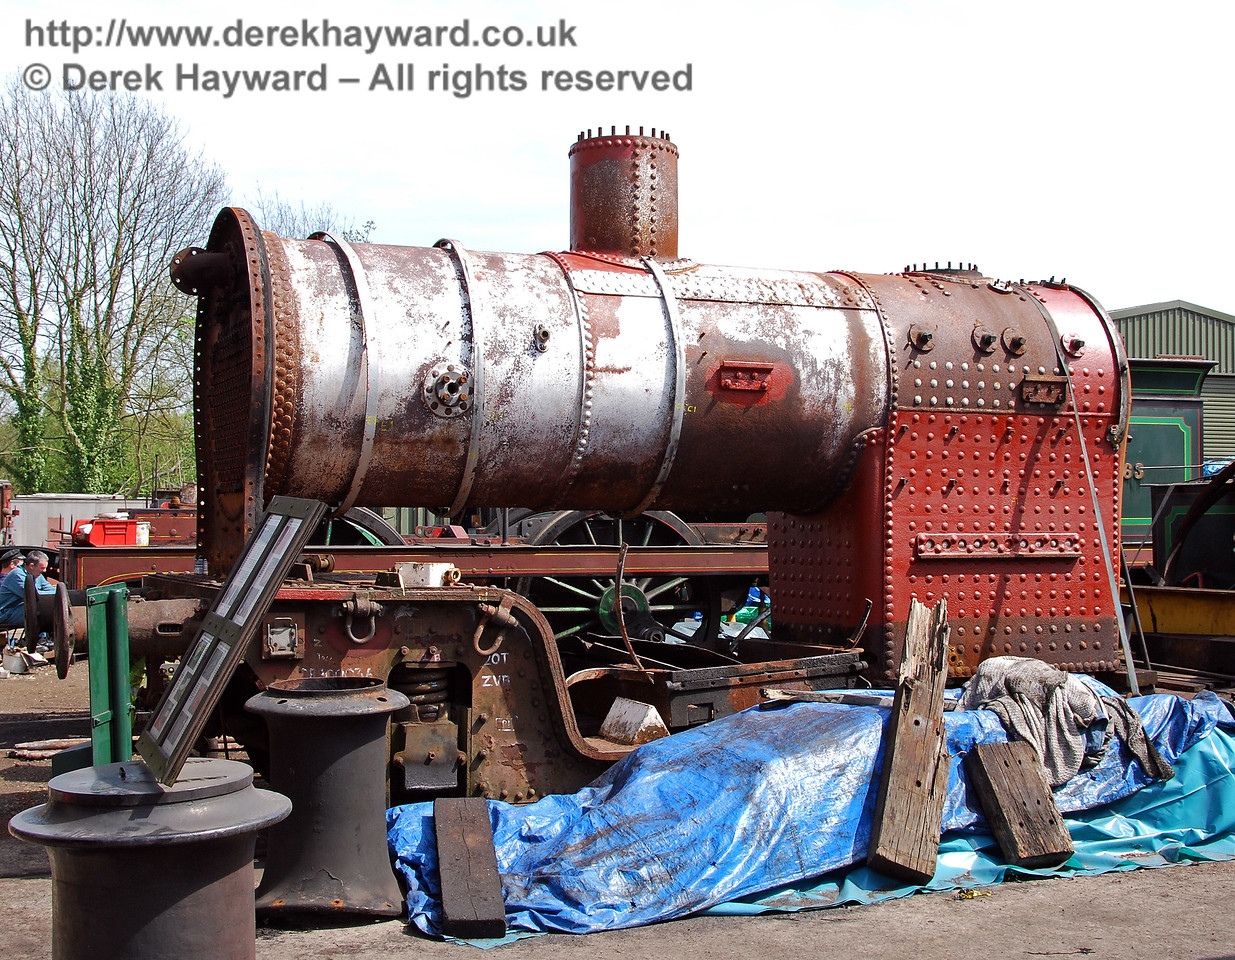 A closer view of the boiler from H class 263 outside Sheffield Park Workshops. 23.04.2009